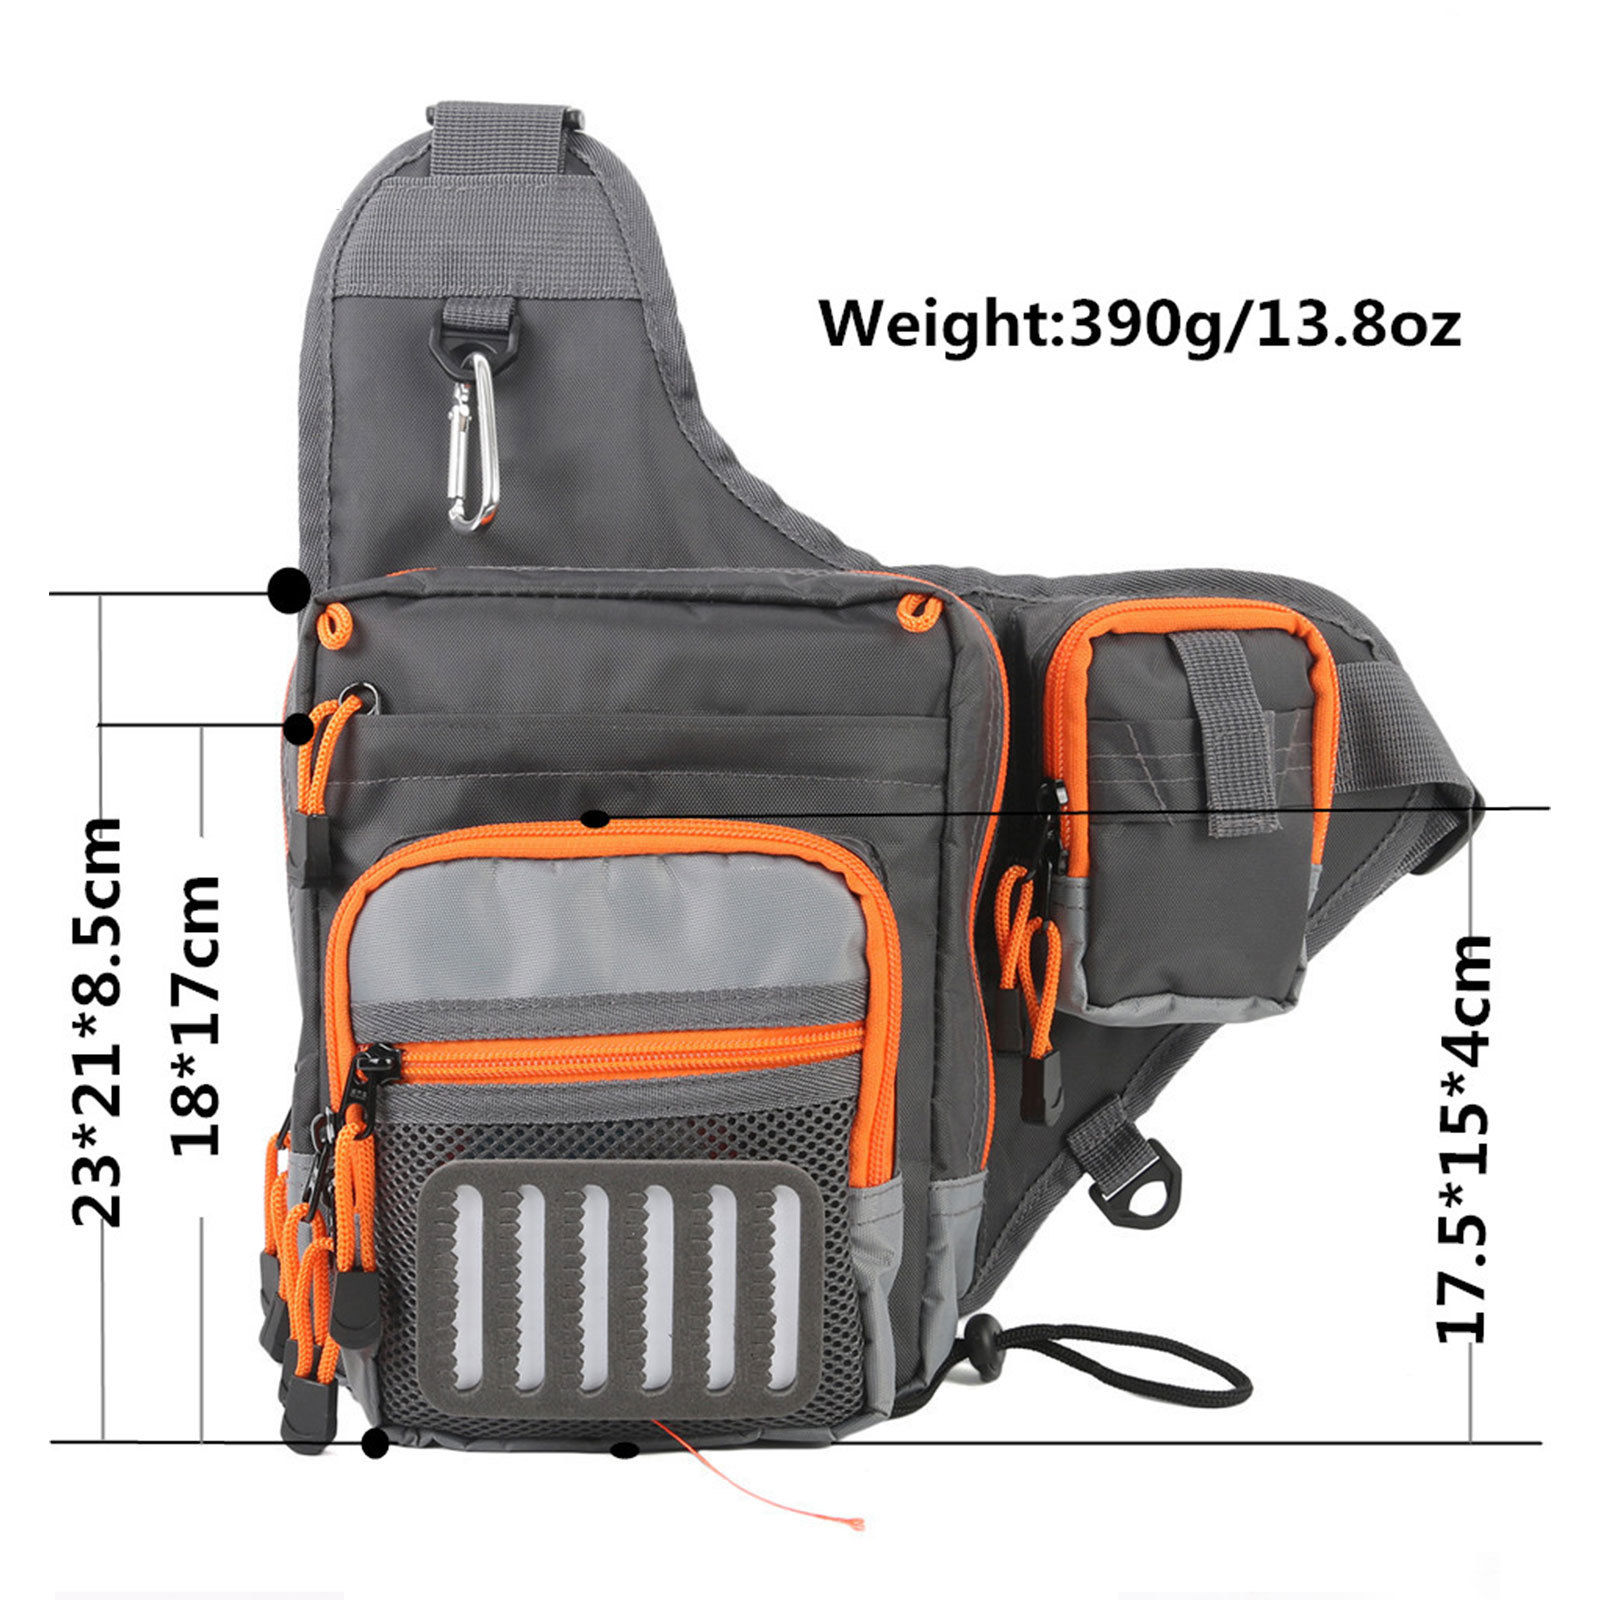 Maxcatch Polyester Fishing Sling Bag Multifunctional Fly Fishing Bag Waist Pack Tool Bag